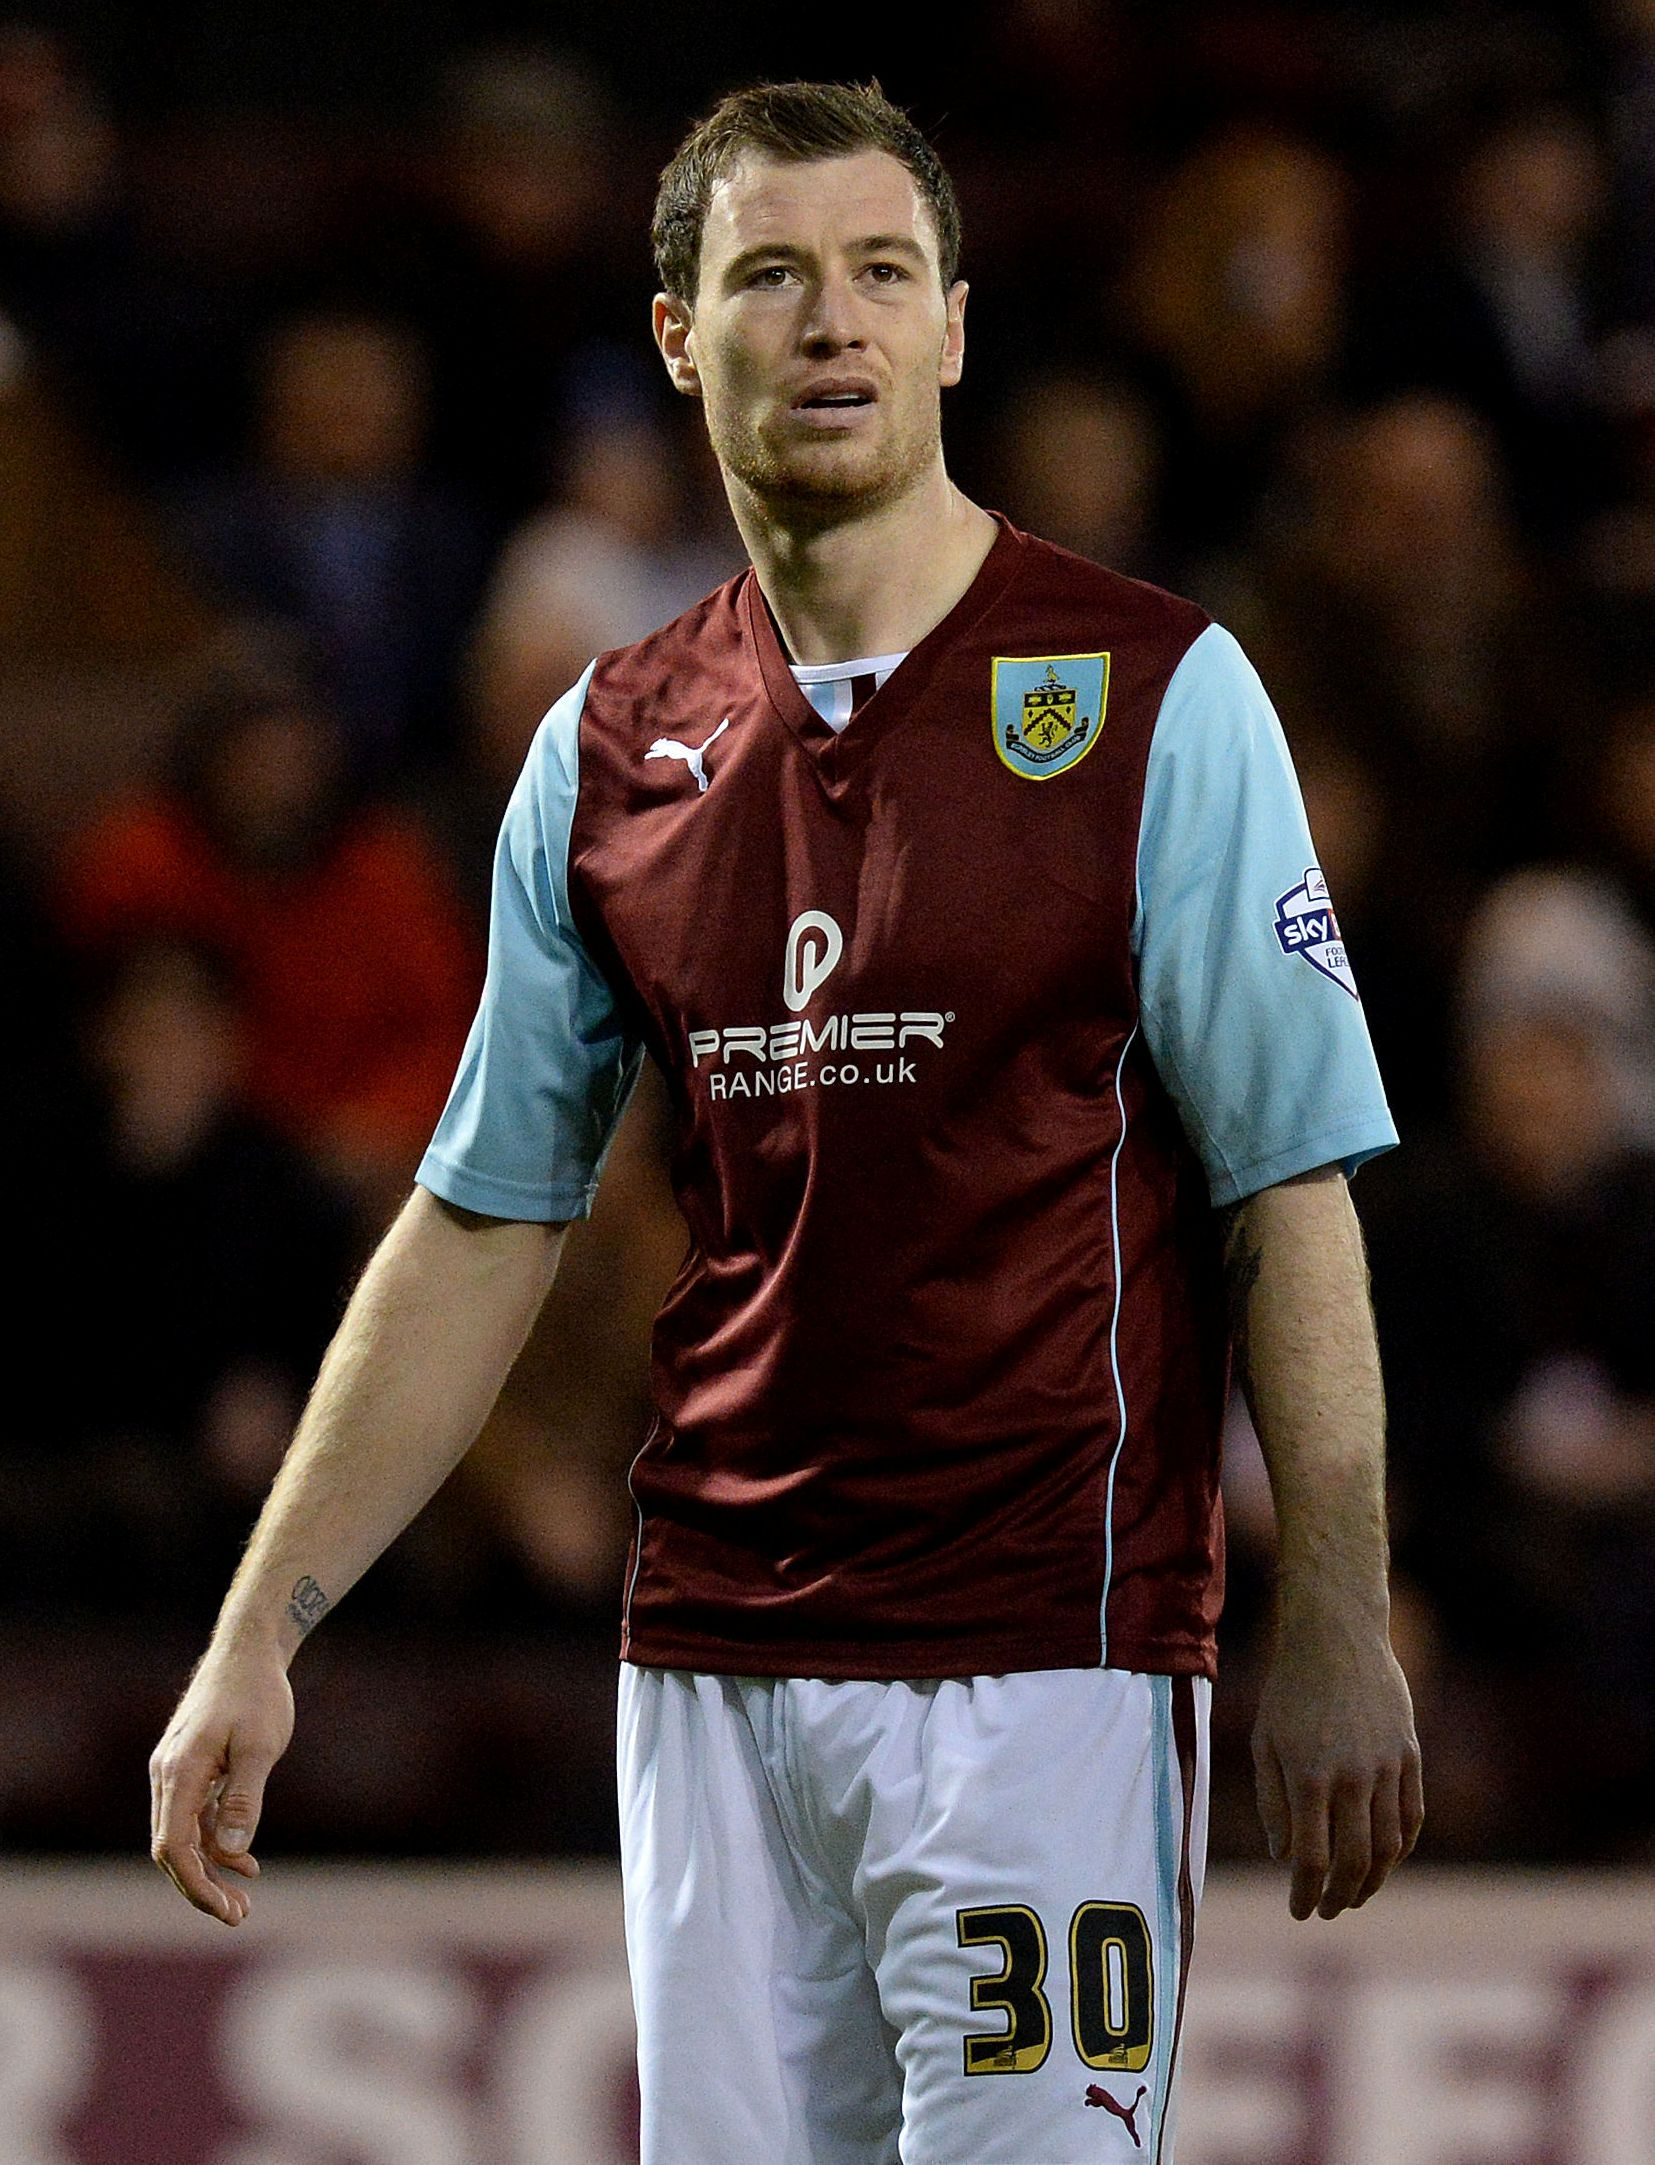 Ashley Barnes played a part in the Burnley goal which  ended Ipswich's challenge for the top six.